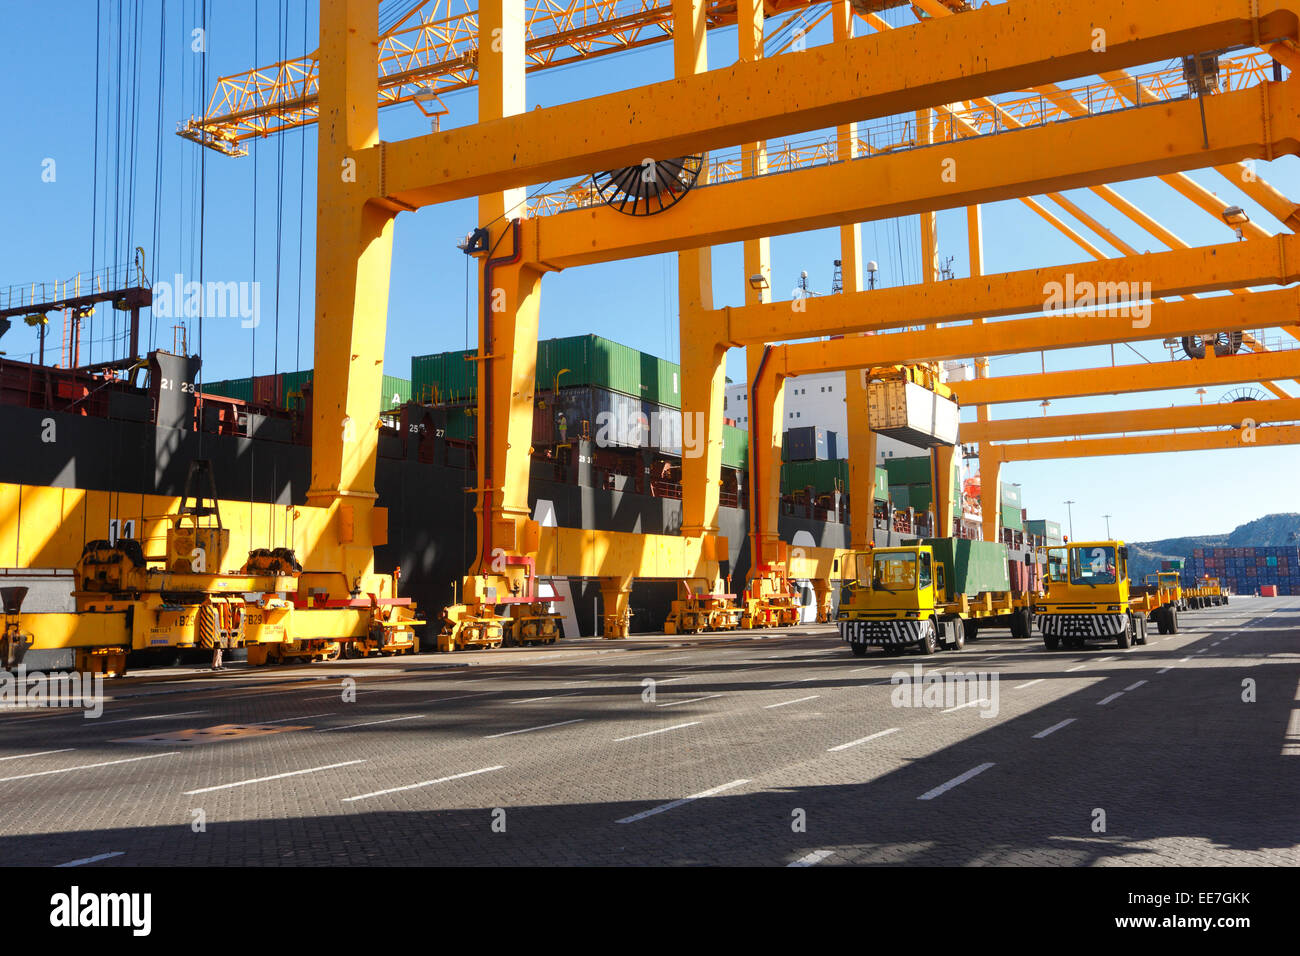 Unloading containers in Khor Fakkan commercial dock. - Stock Image